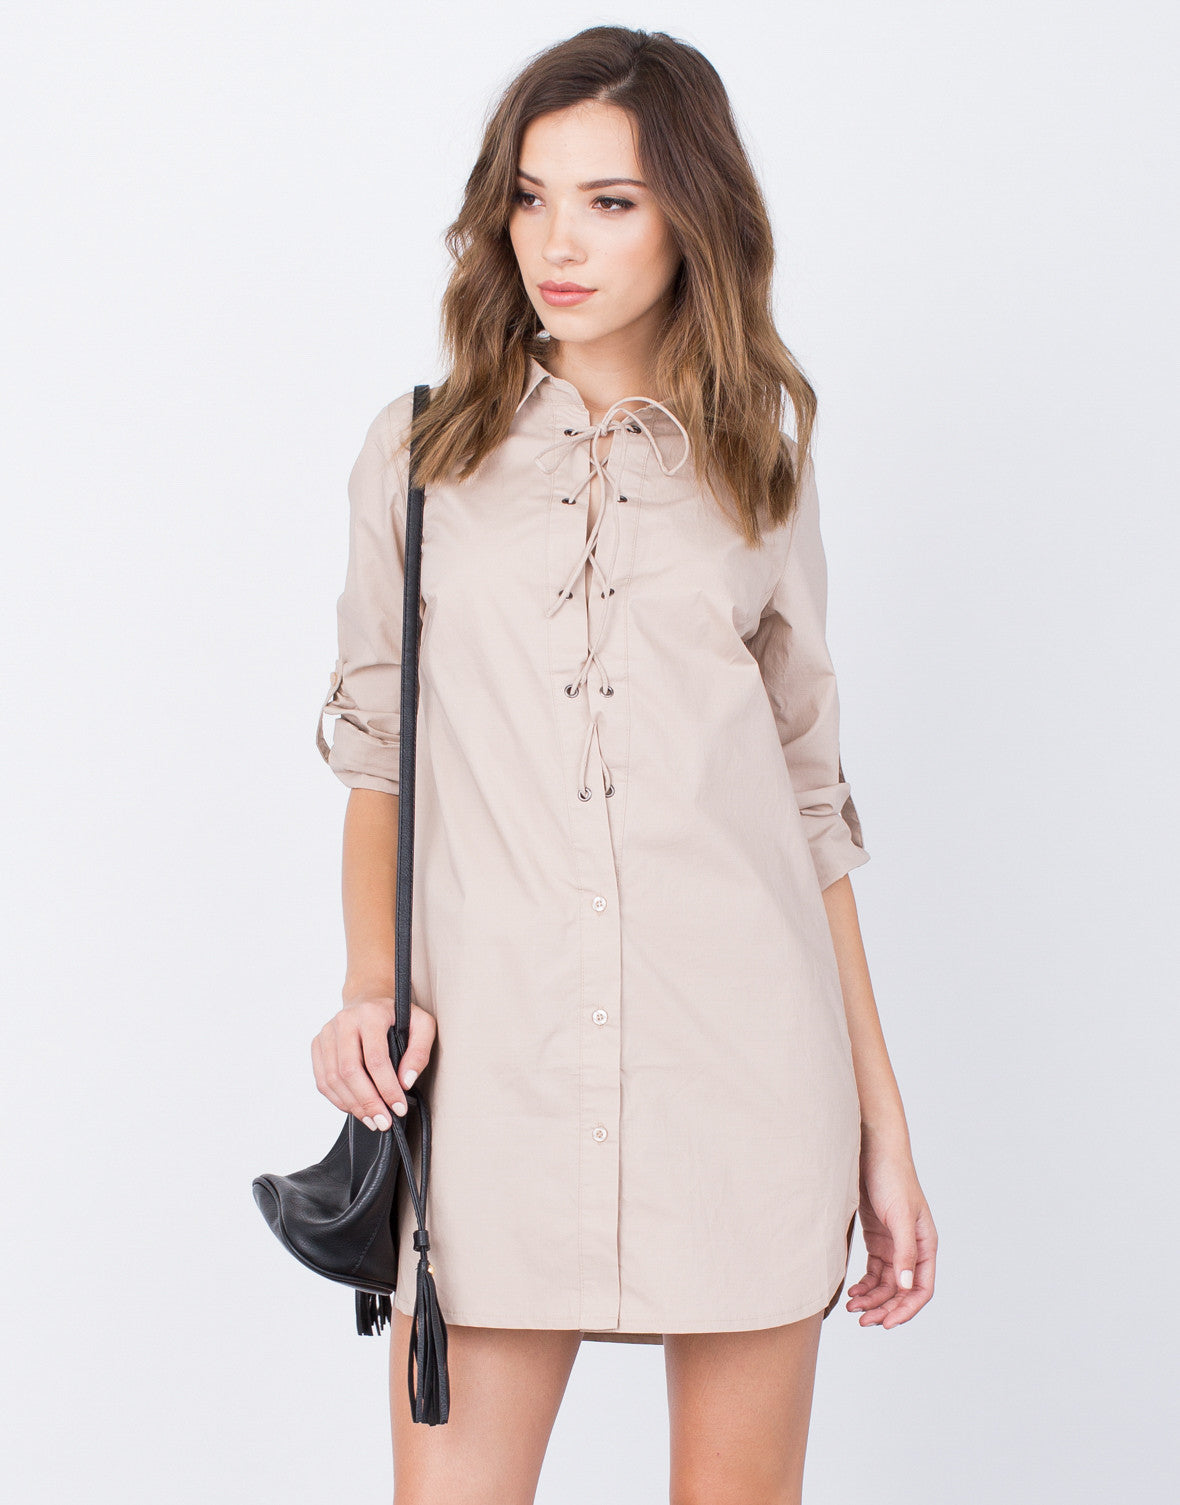 Front View of Lace-Up Shirt Dress